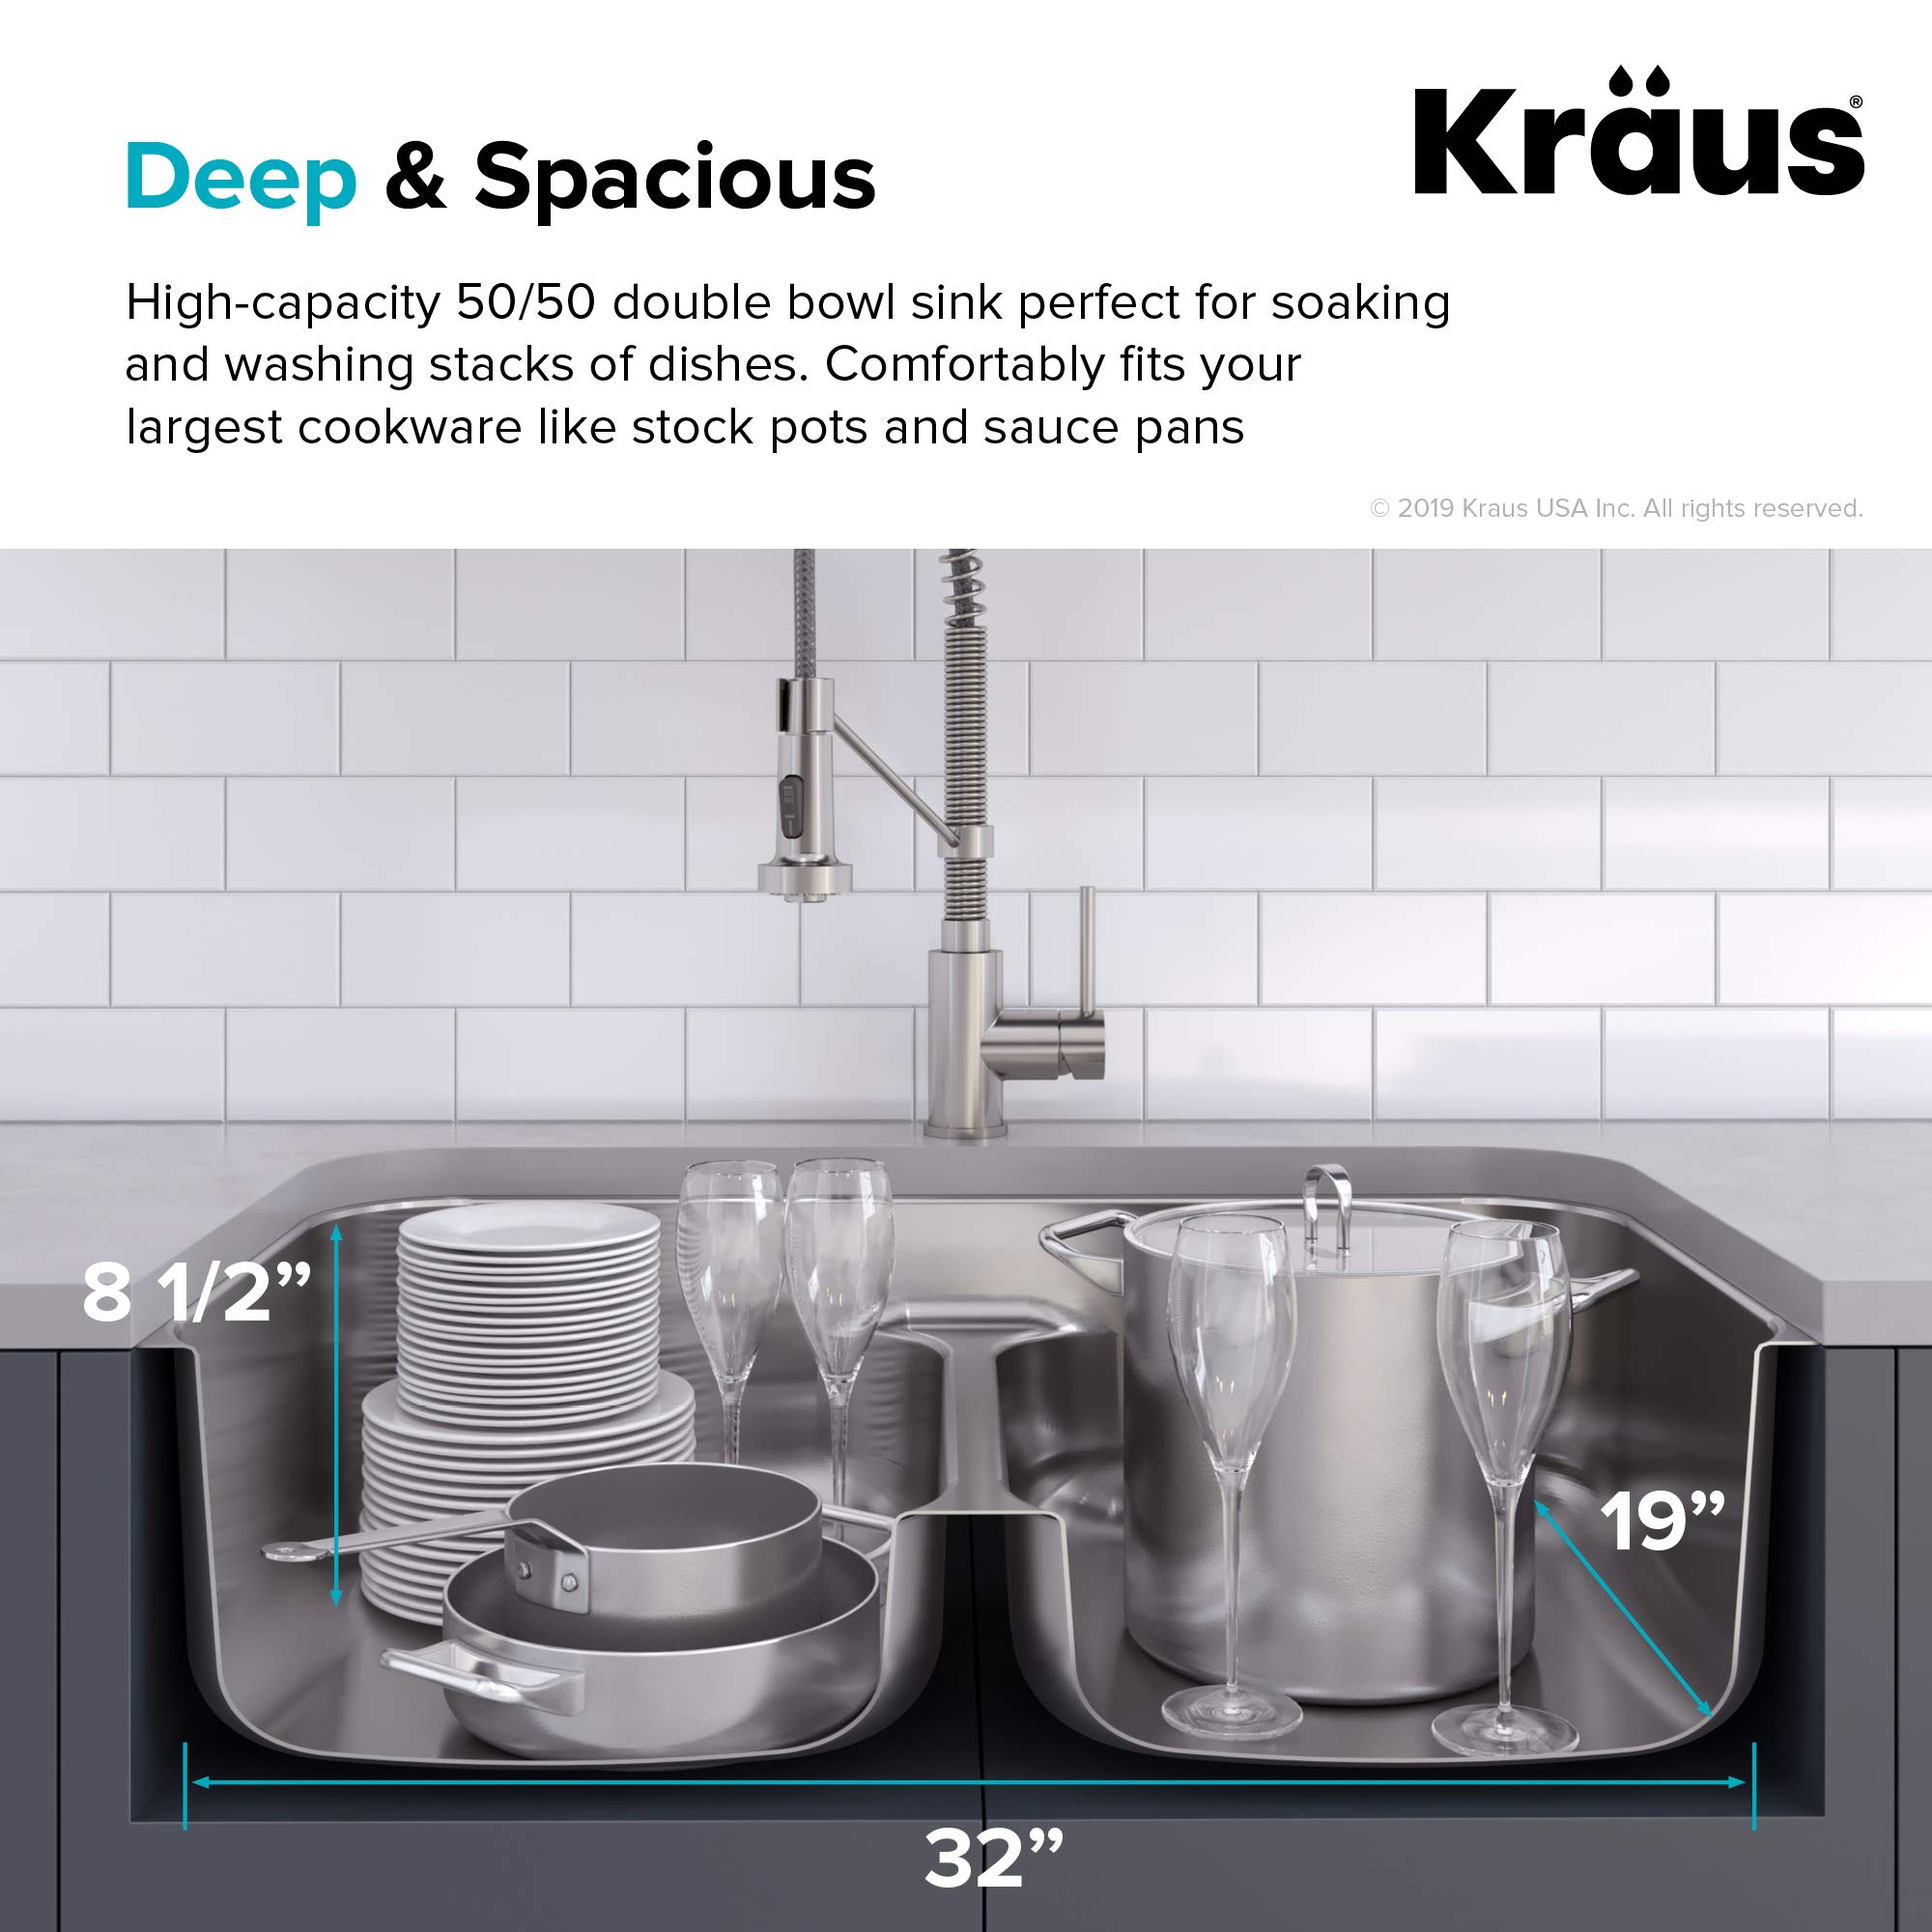 KRAUS KBU32 Premier 32-inch 16 Gauge Undermount 50/50 Double Bowl Kitchen Sink with Smart Low Divider by Kraus (Image #5)